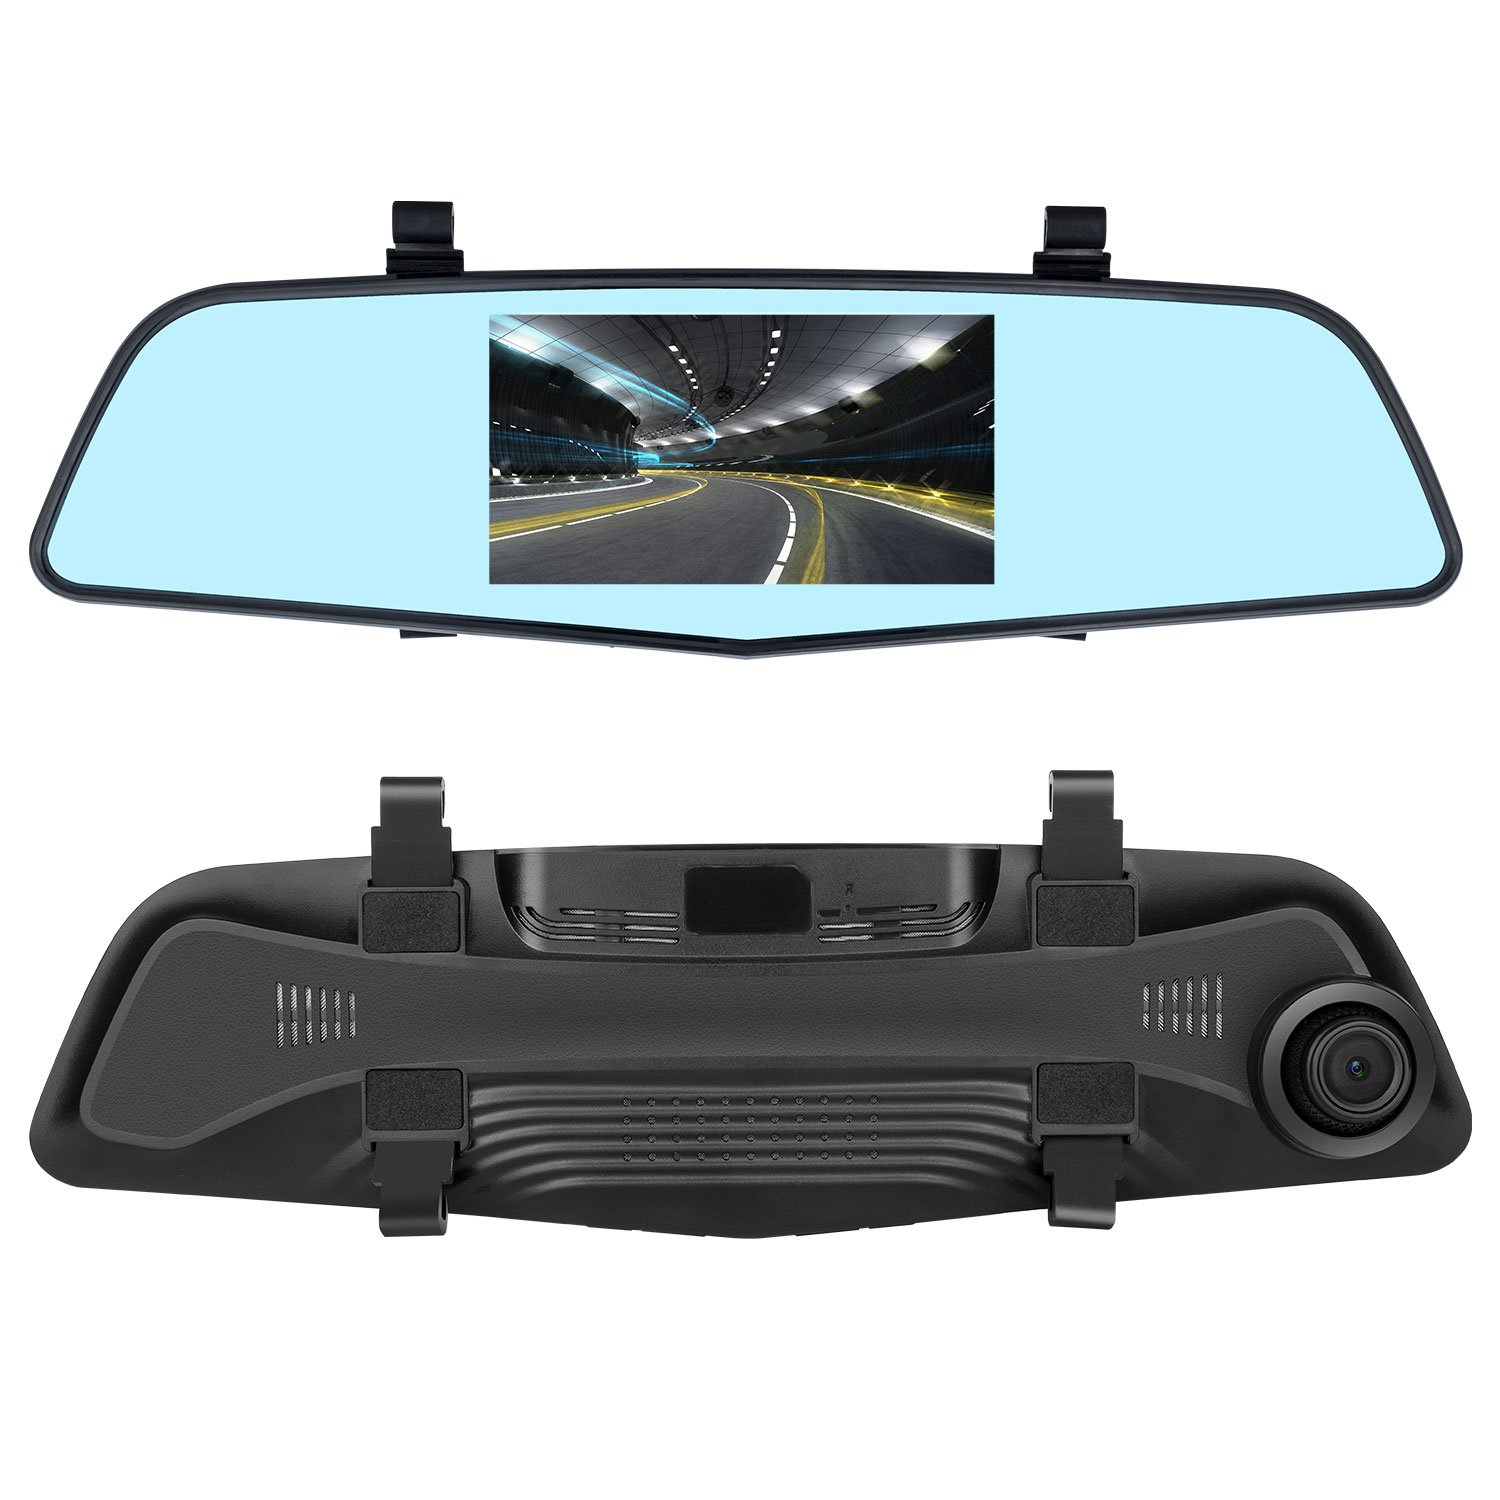 Upgraded - EHOOM Mirror Dash Camera A2, Front View HD Mirror Camera, 4.3'' Touch Screen, 4-Lane 140° Wide-Angle View Lens, Car DVR with G-Sensor, Loop Recording, Parking Monitor, Night Vision